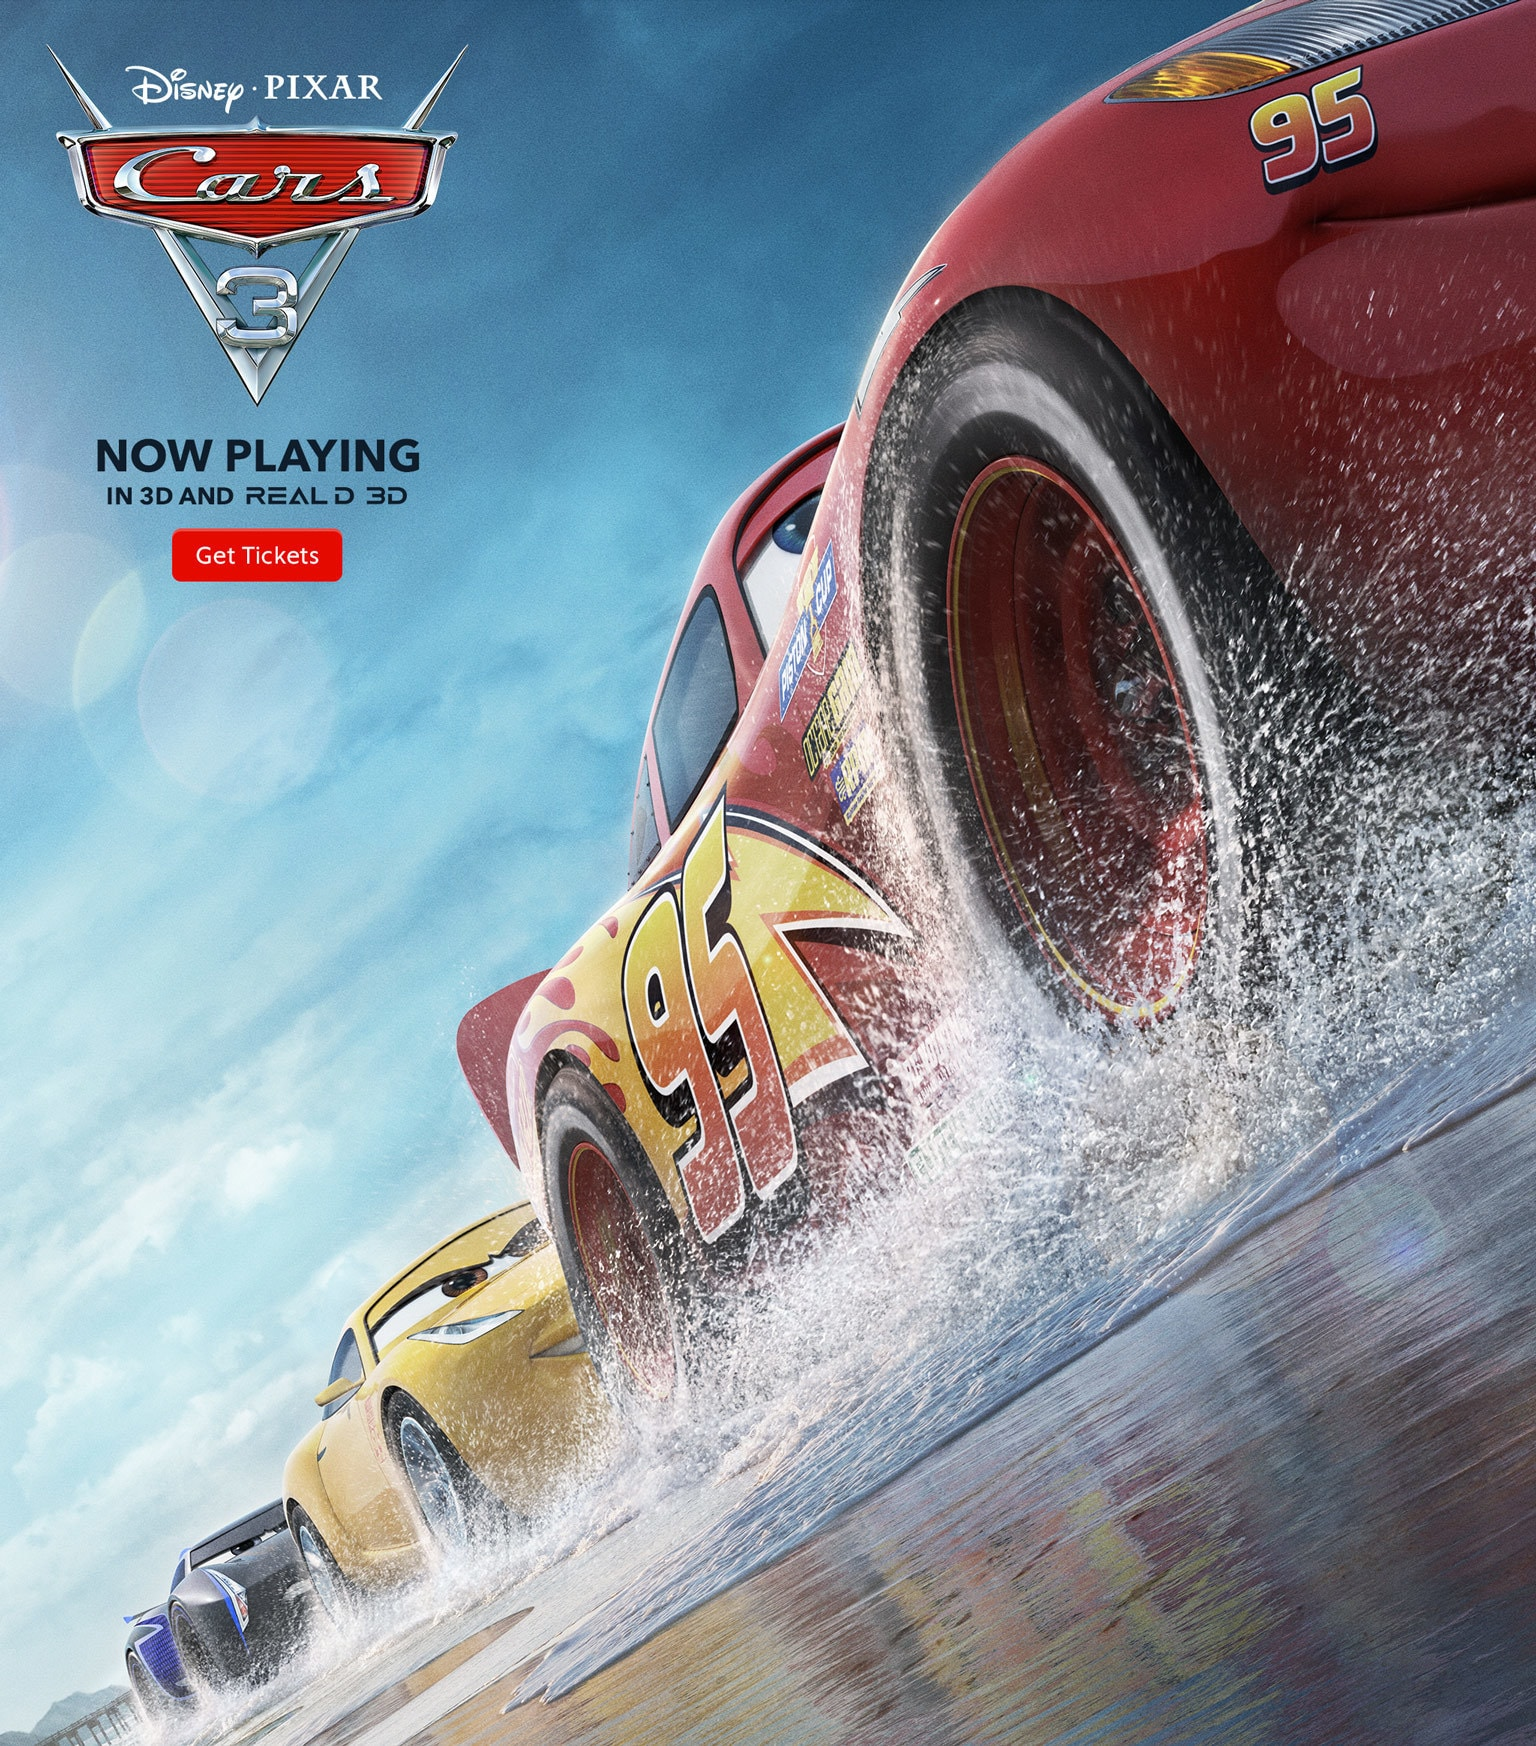 cars 3 now playing get tickets